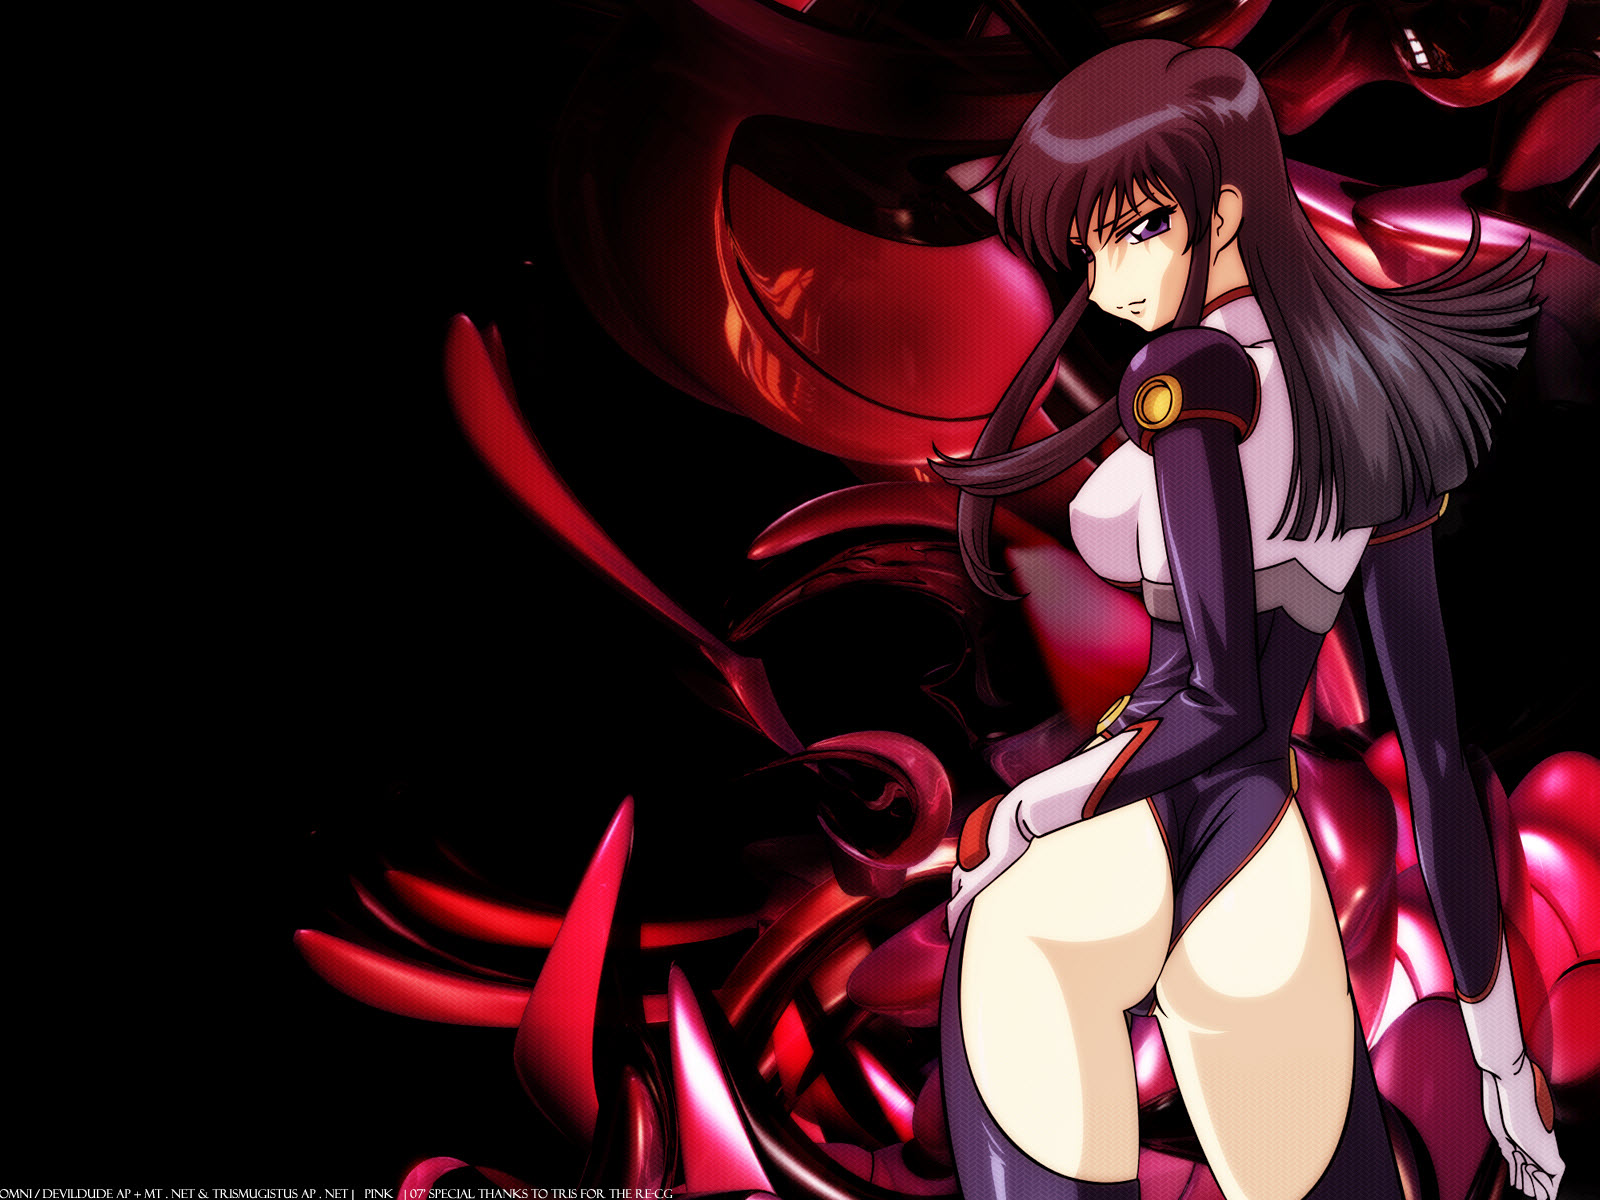 Anime Girl 96 Wallpaper High Definition, Anime Girl 96 Pictures High Wallpaper